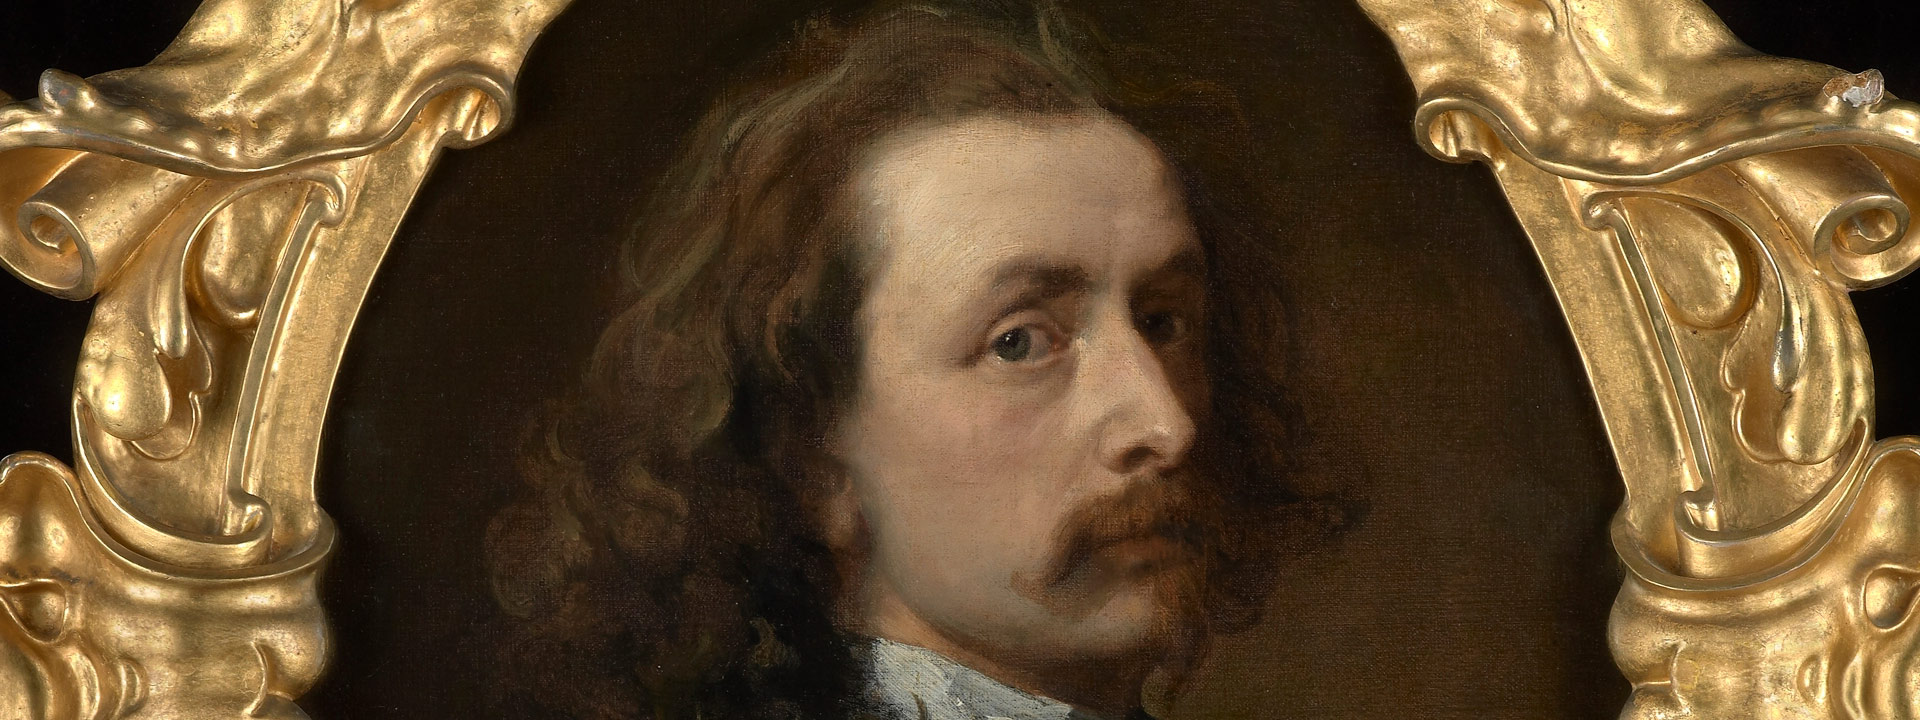 Self-portrait by Sir Anthony van Dyck, c.1640 © National Portrait Gallery, London.